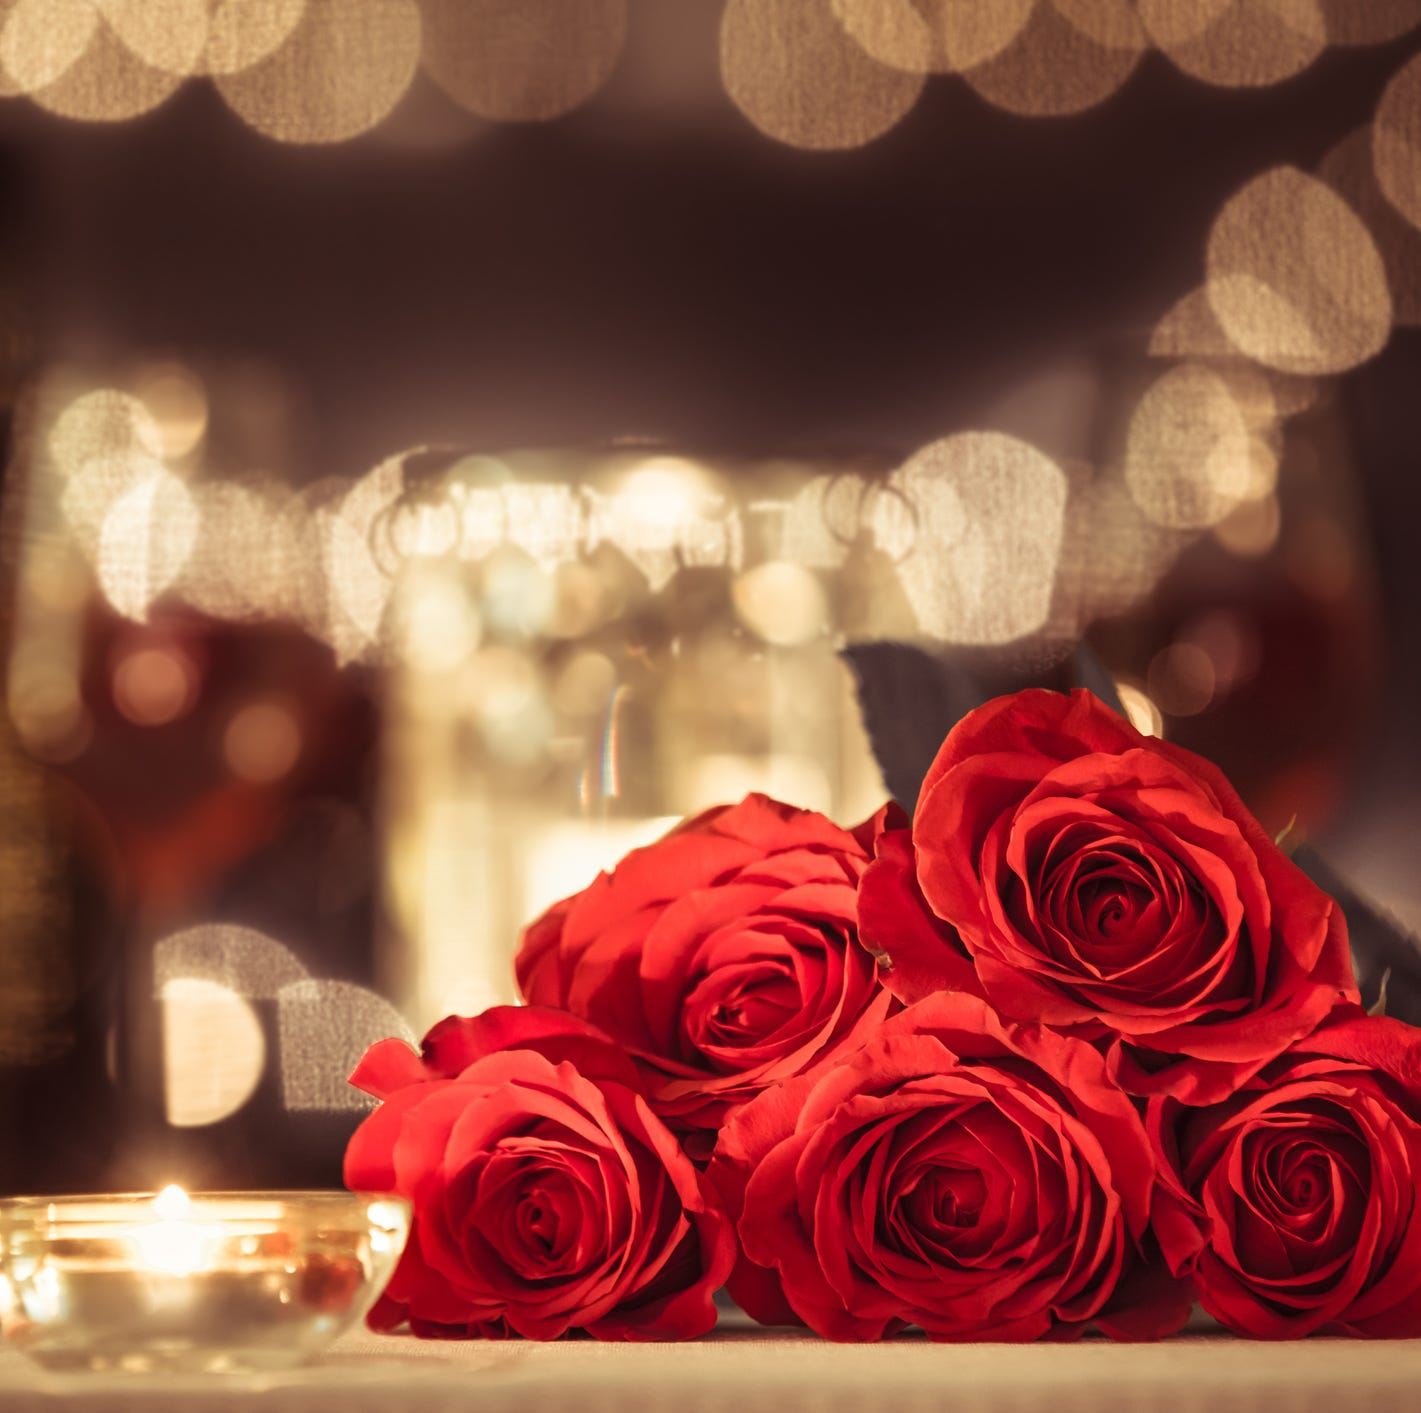 Date ideas for Valentine's Day in Wisconsin Rapids: We have you covered.